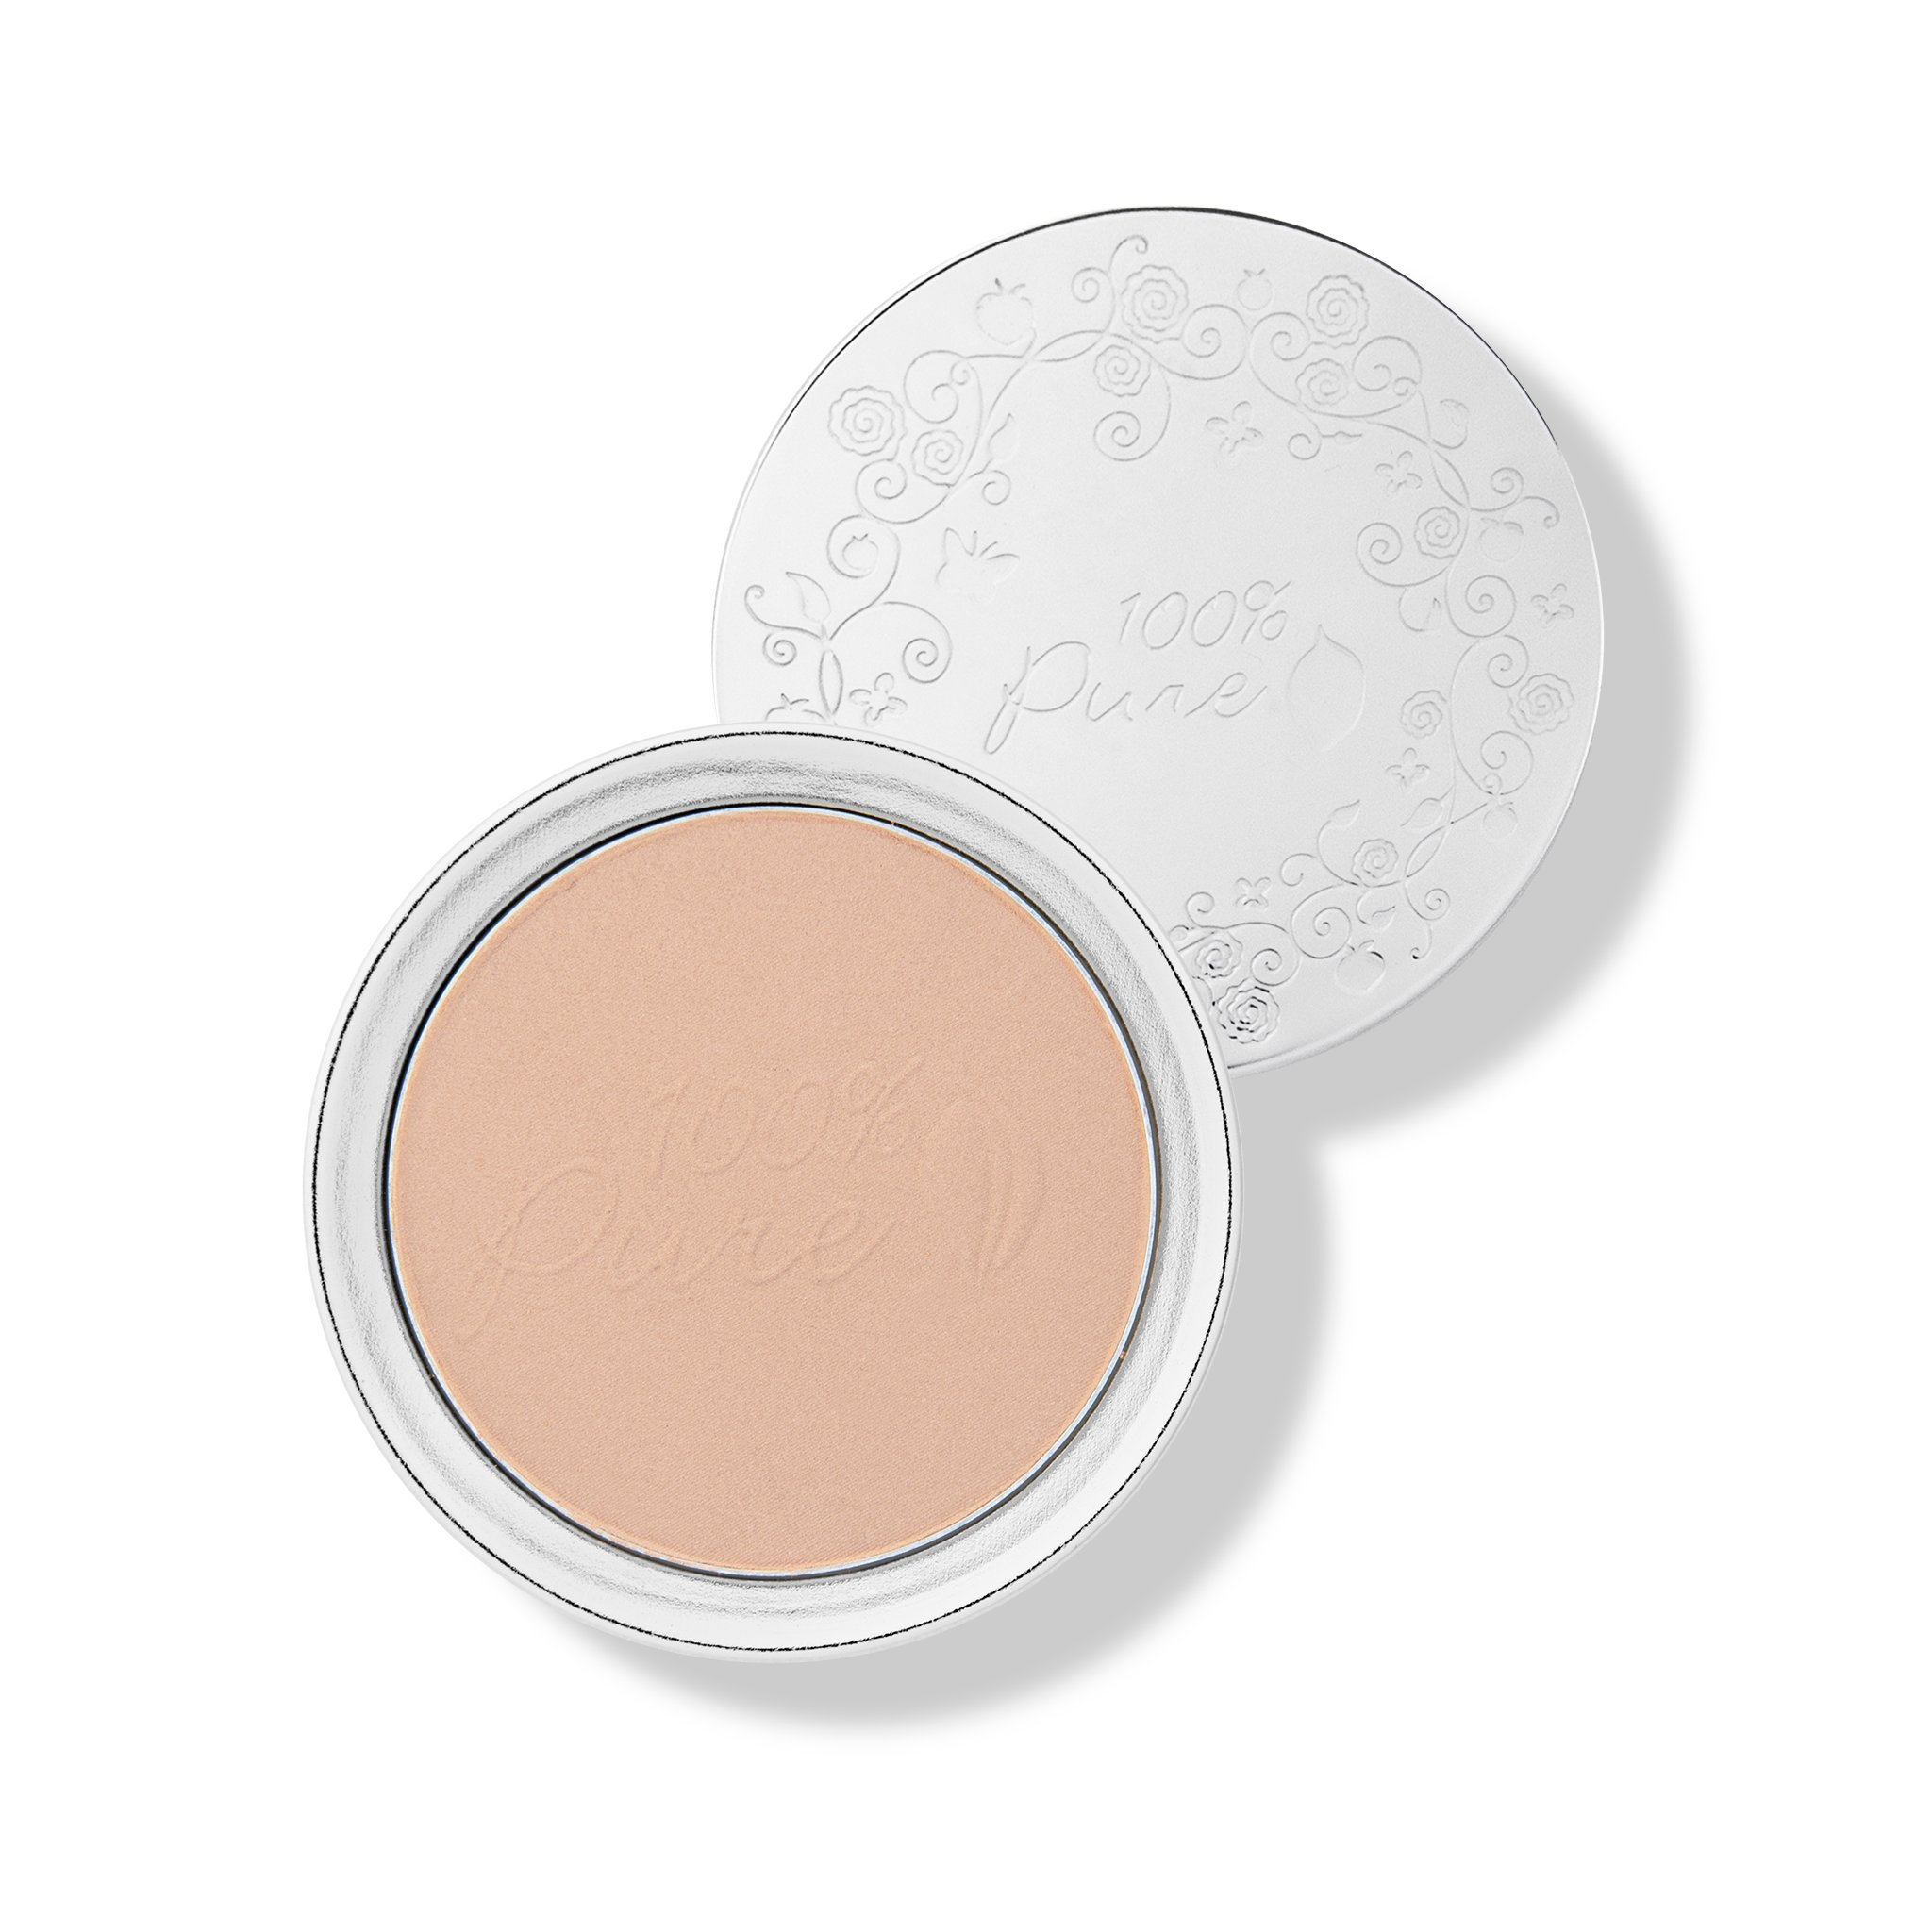 100% PURE Powder Foundation (Fruit Pigmented), Peach Bisque, Matte Finish, Absorbs Oil, Anti-Aging, Helps Fight Acne, Natural, Vegan Makeup (Medium Shade w/Yellow Undertones) - 0.32 Oz